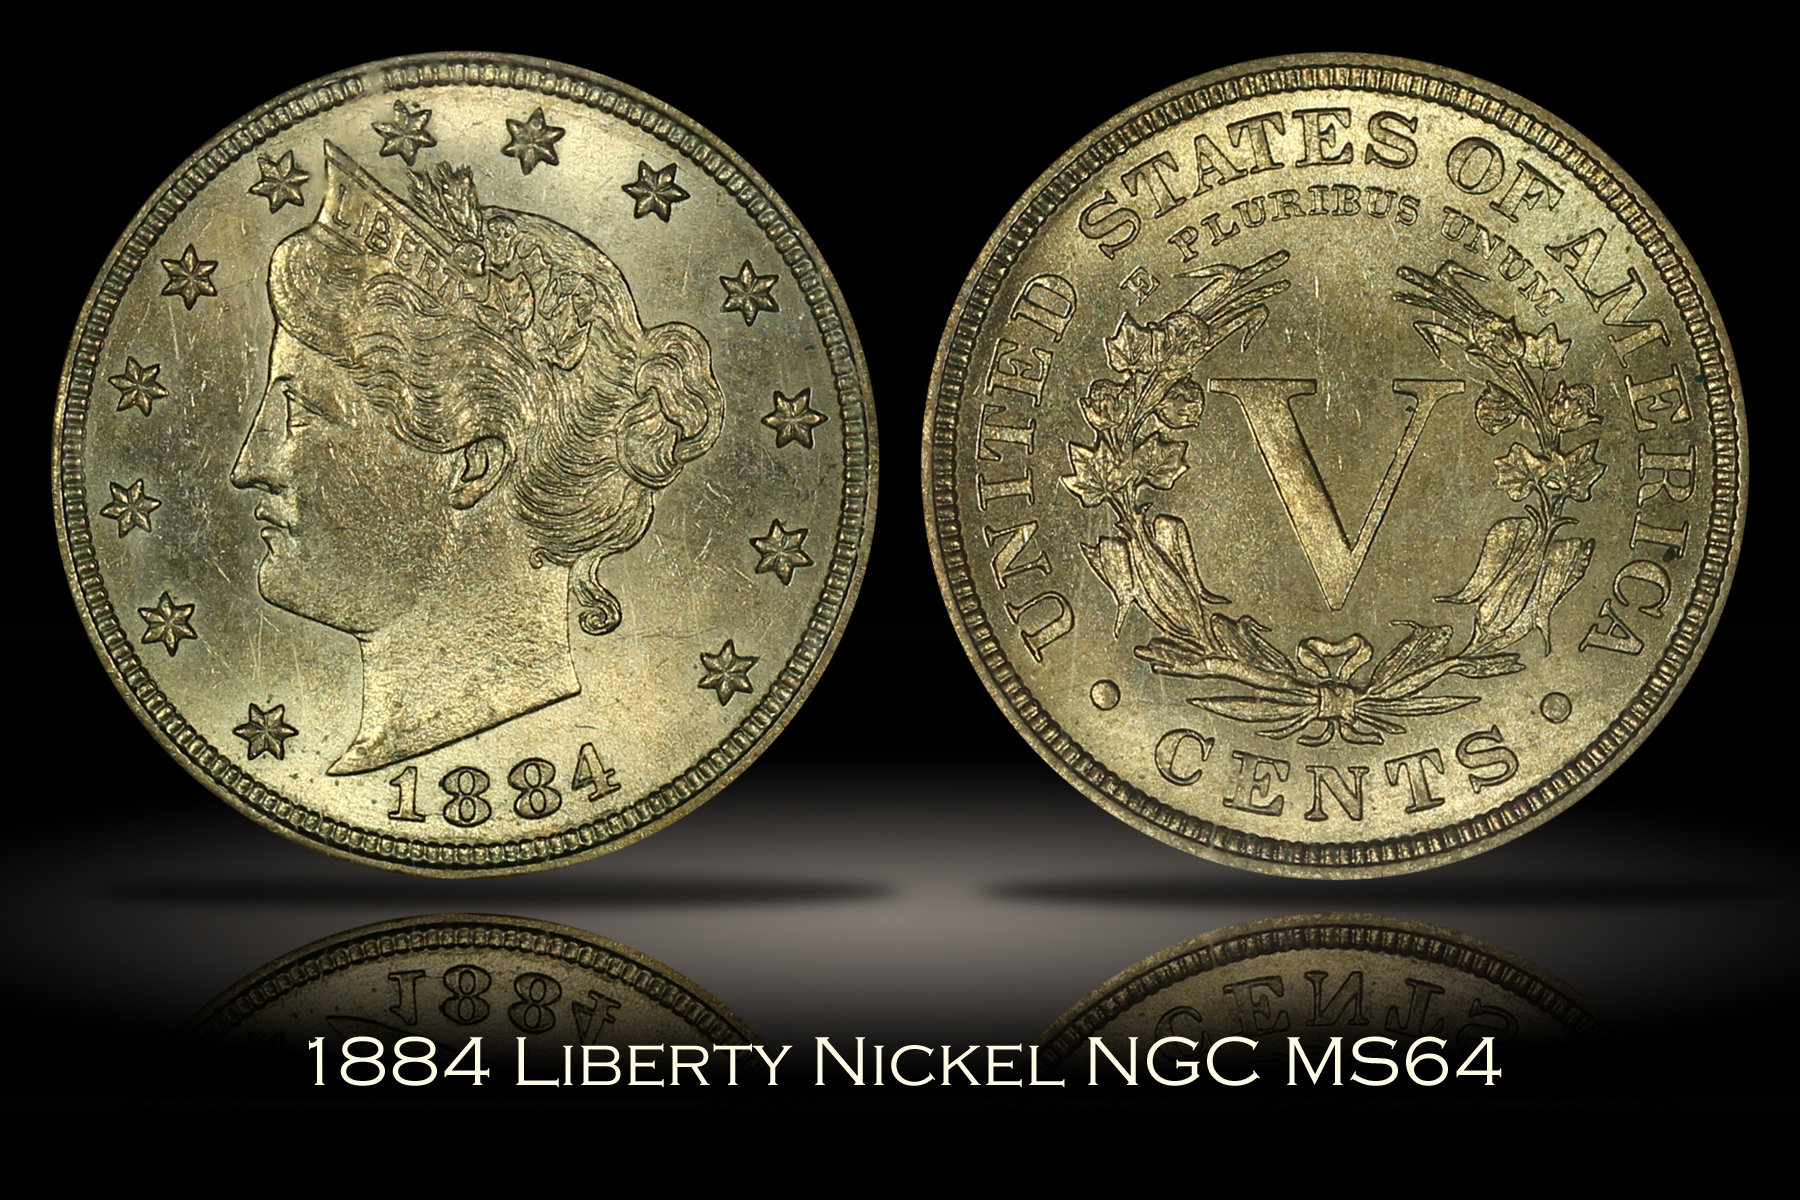 1884 Liberty Nickel NGC MS64